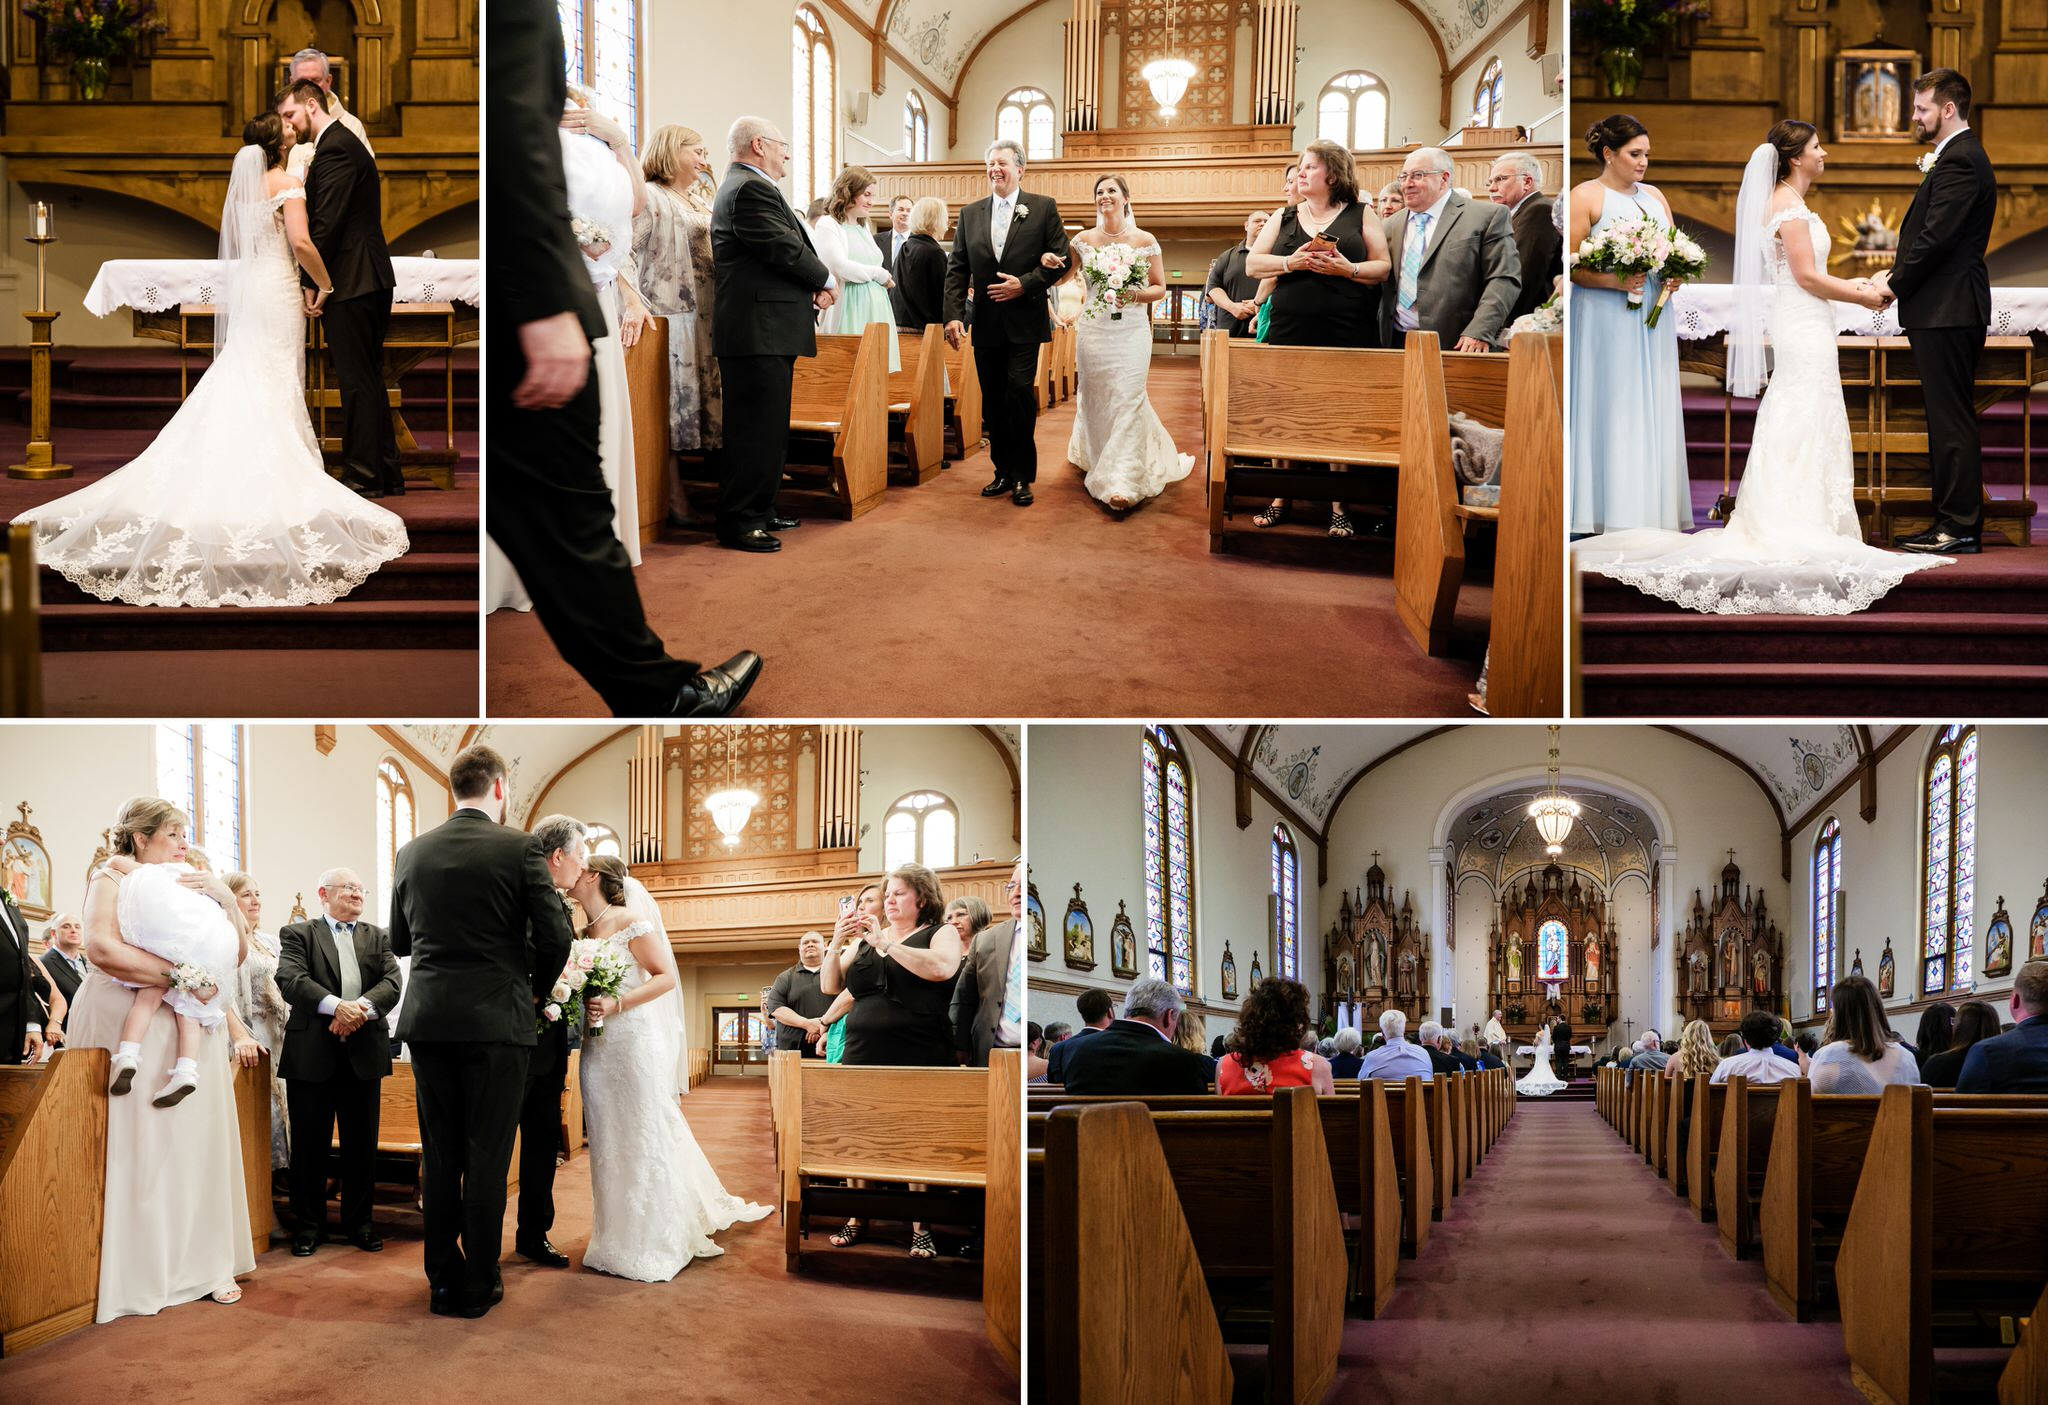 Wedding ceremony at Saint Mary Catholic Church.